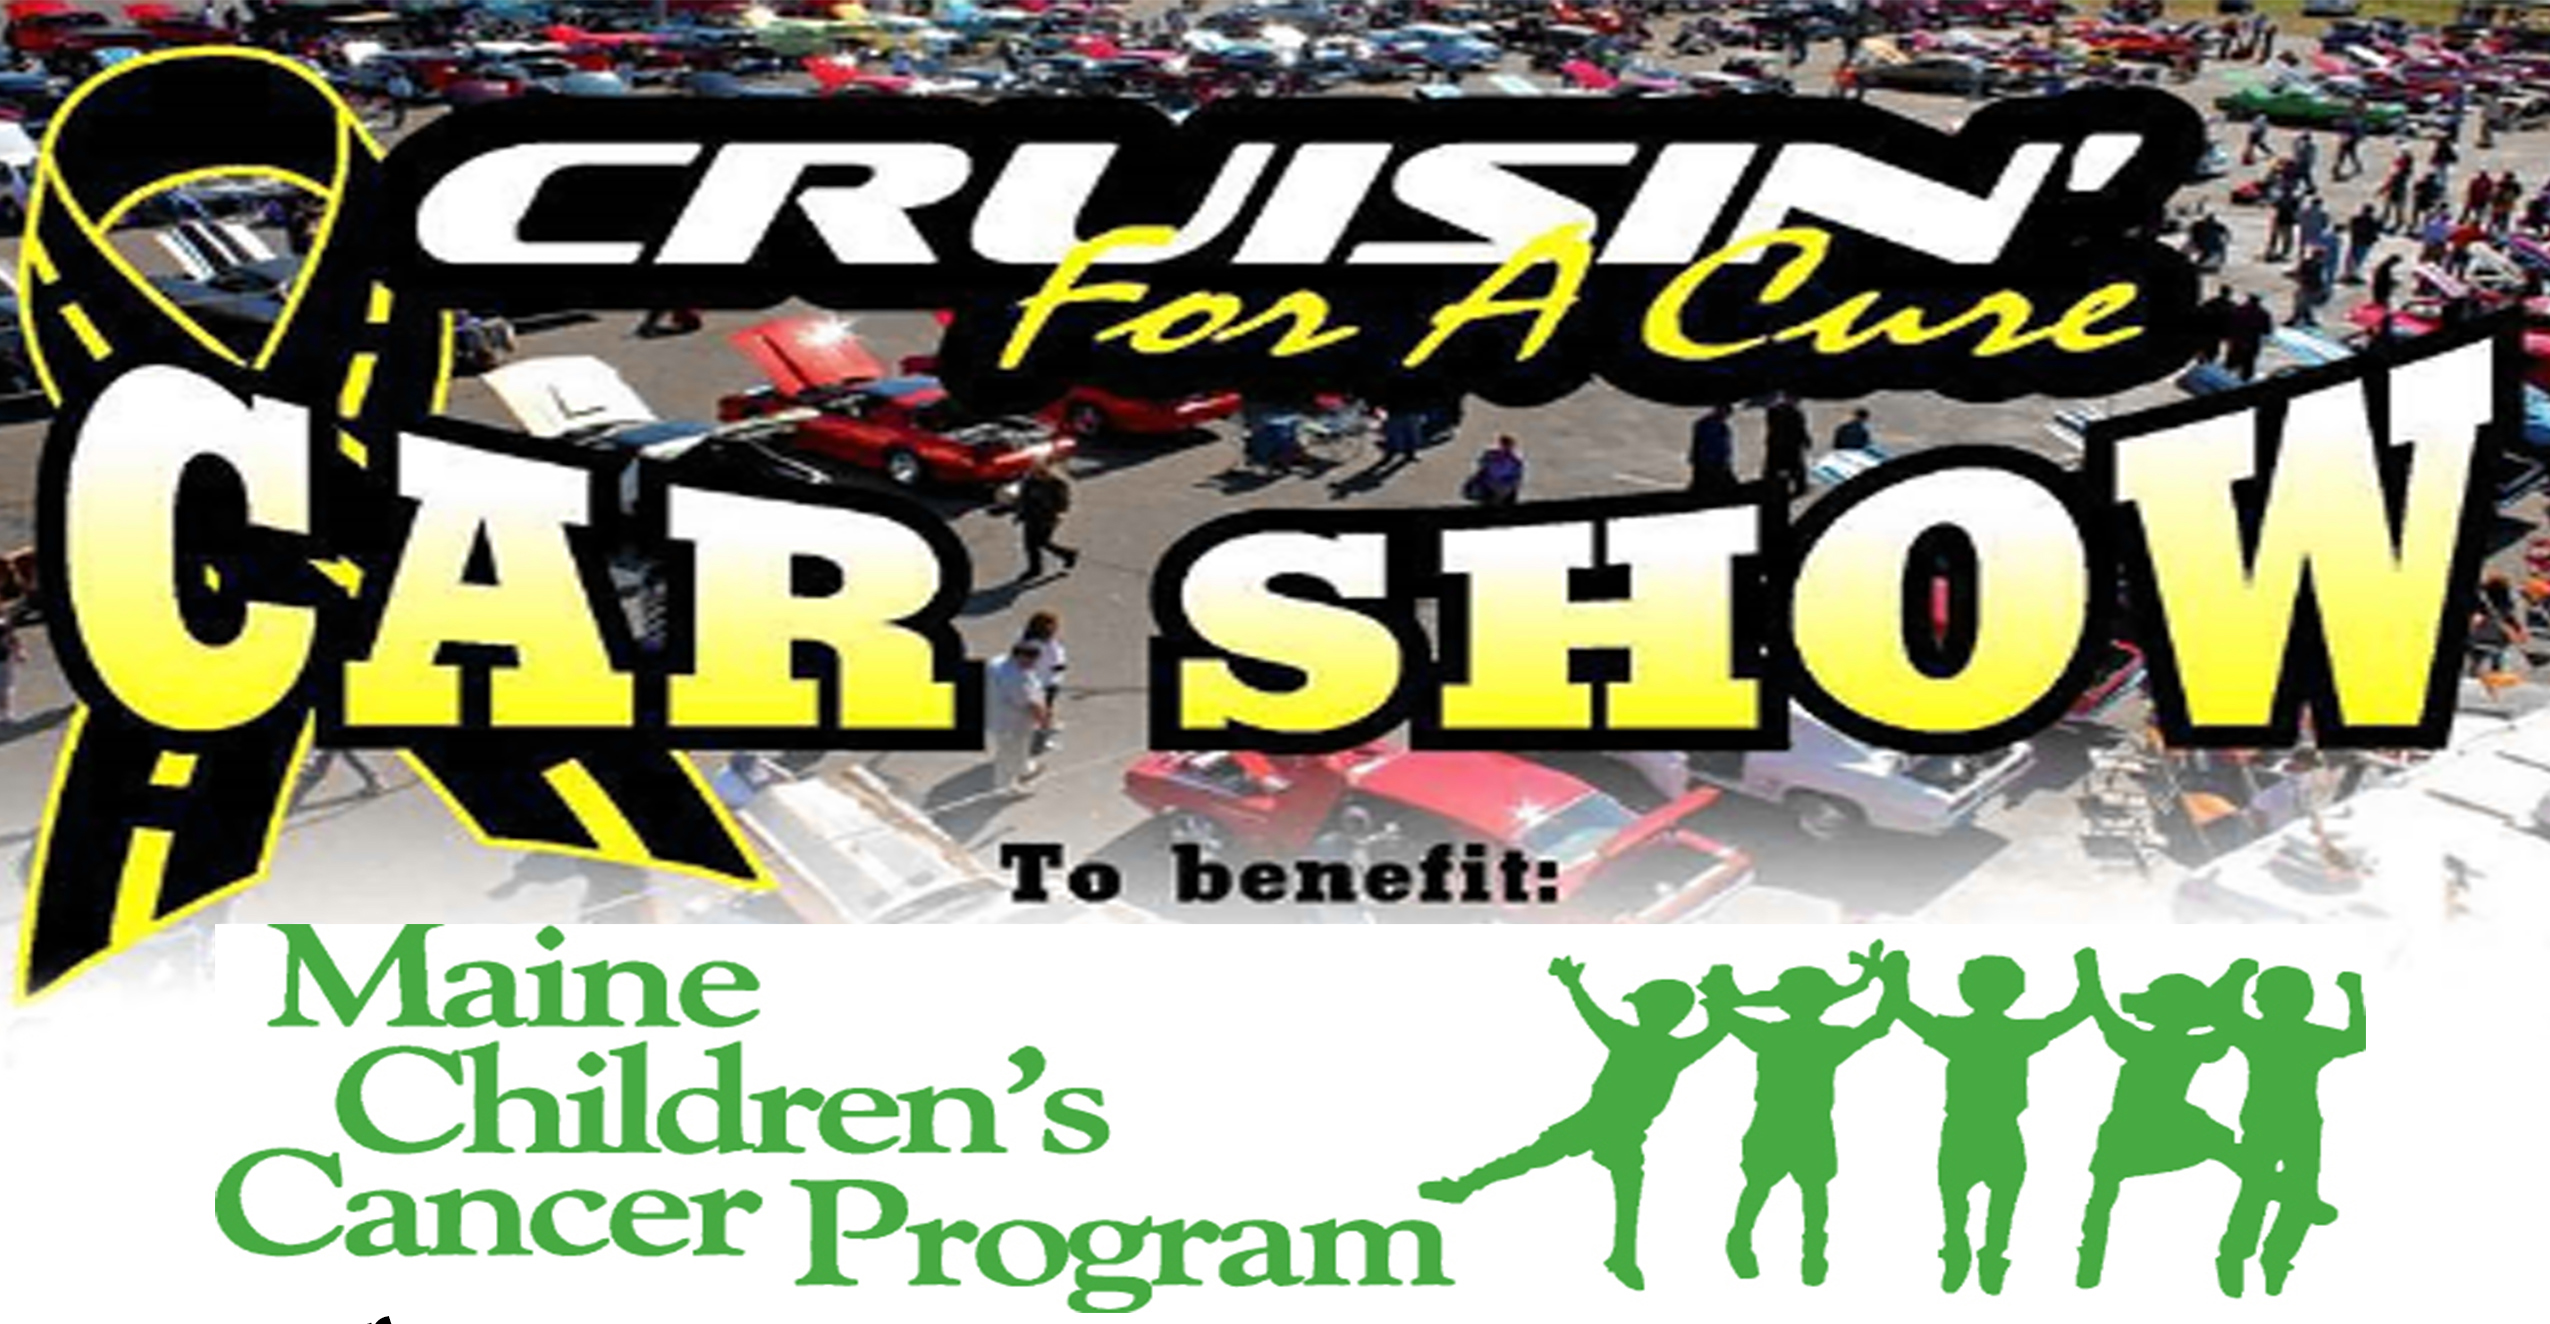 6th Annual Cruisin' For A Cure Car Show